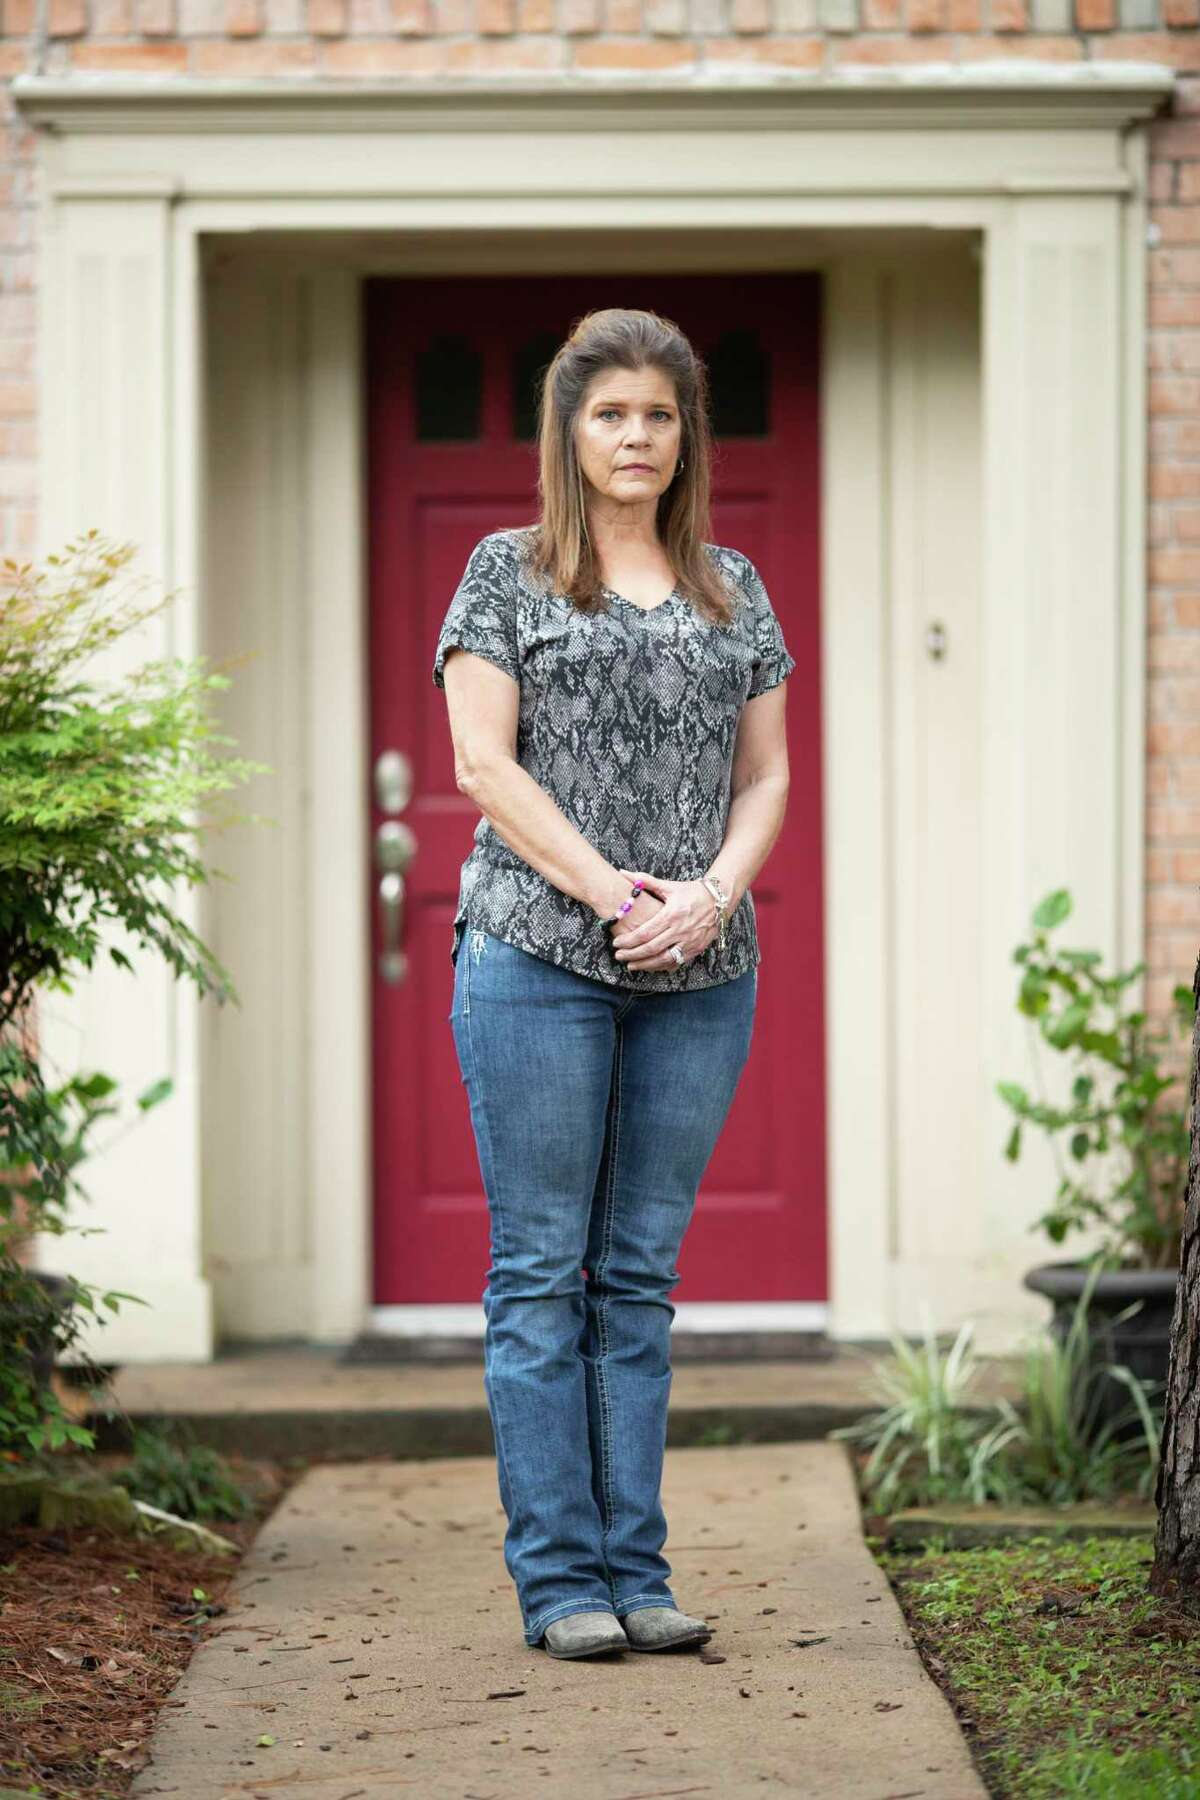 Rynda Scholwinski at her home on Tuesday, April 7, 2020, in Houston. Scholwinski's husband is Raymond, a Harris County Sheriff's Deputy who is in critical condition fighting for his life from COVID-19.